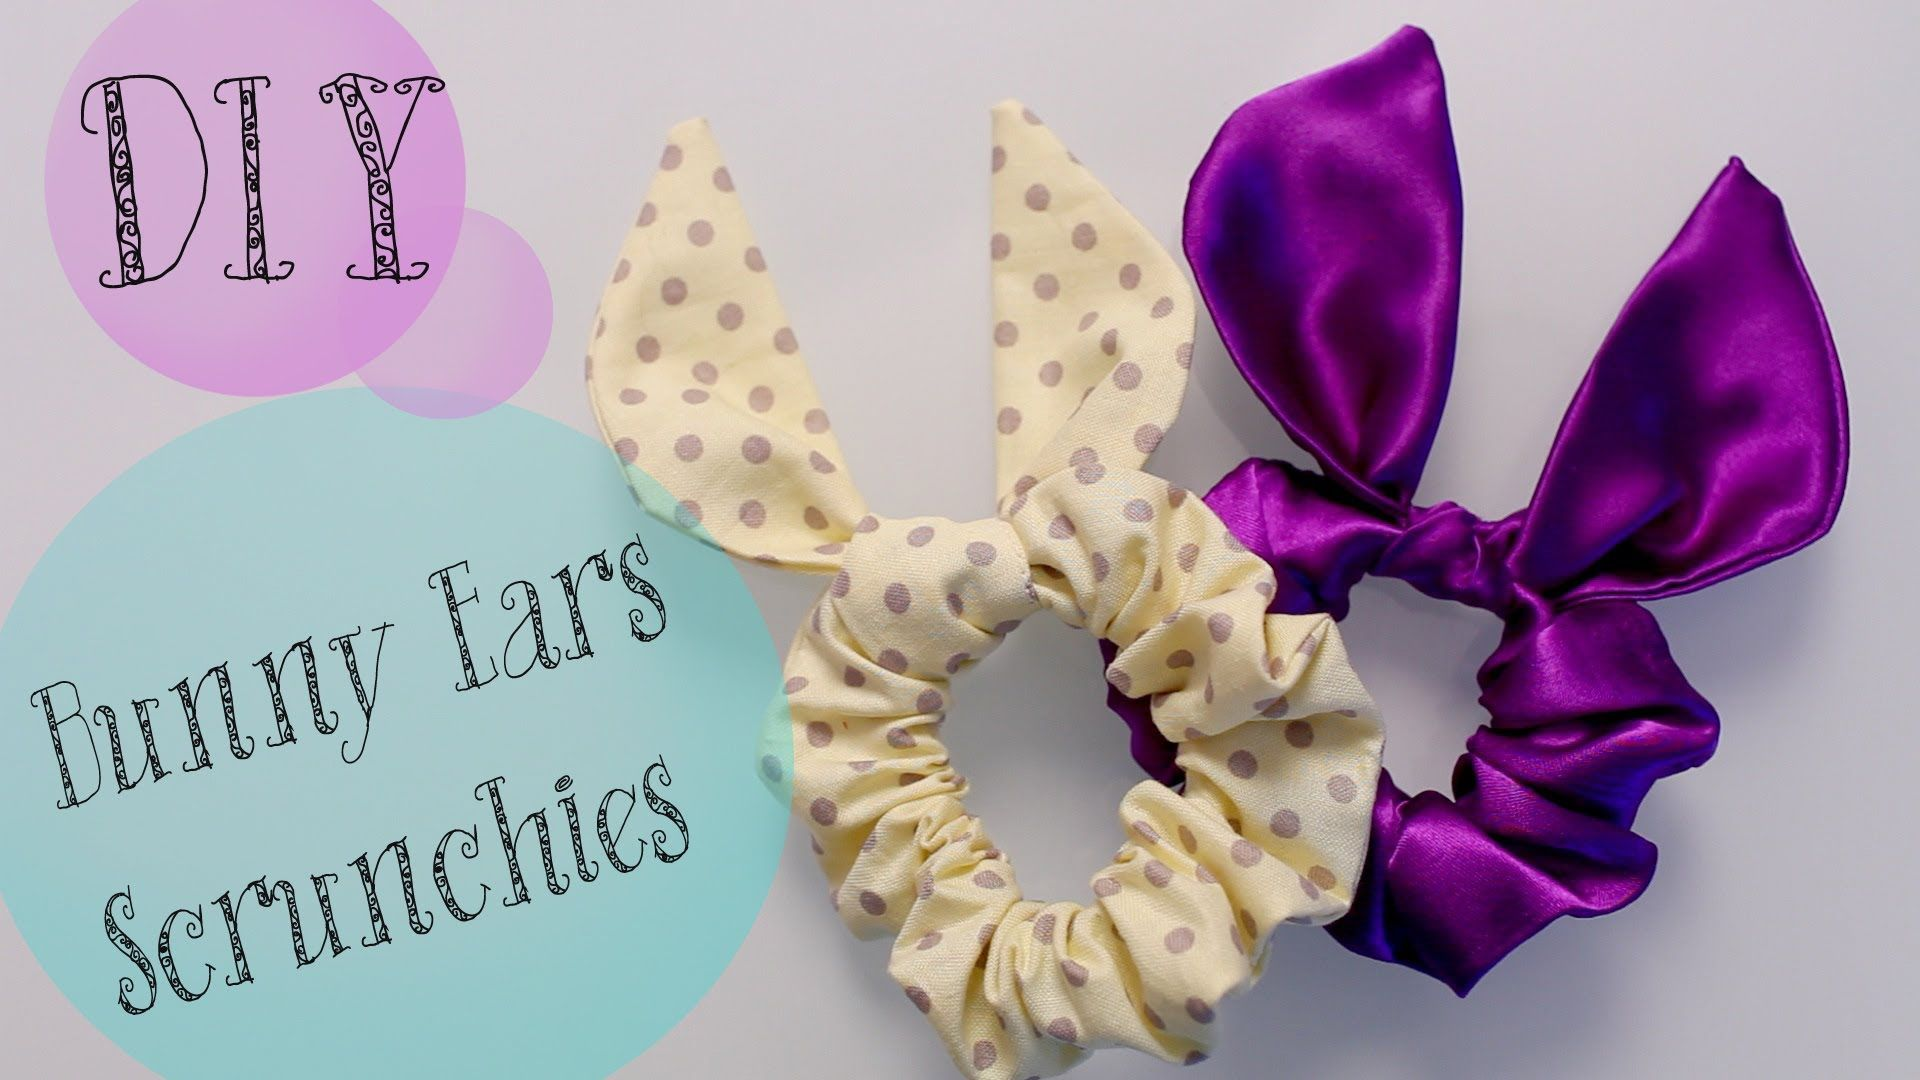 Diy topshop bunny ears scrunchie easter gift idea via youtube diy topshop bunny ears scrunchie easter gift idea via youtube negle Image collections